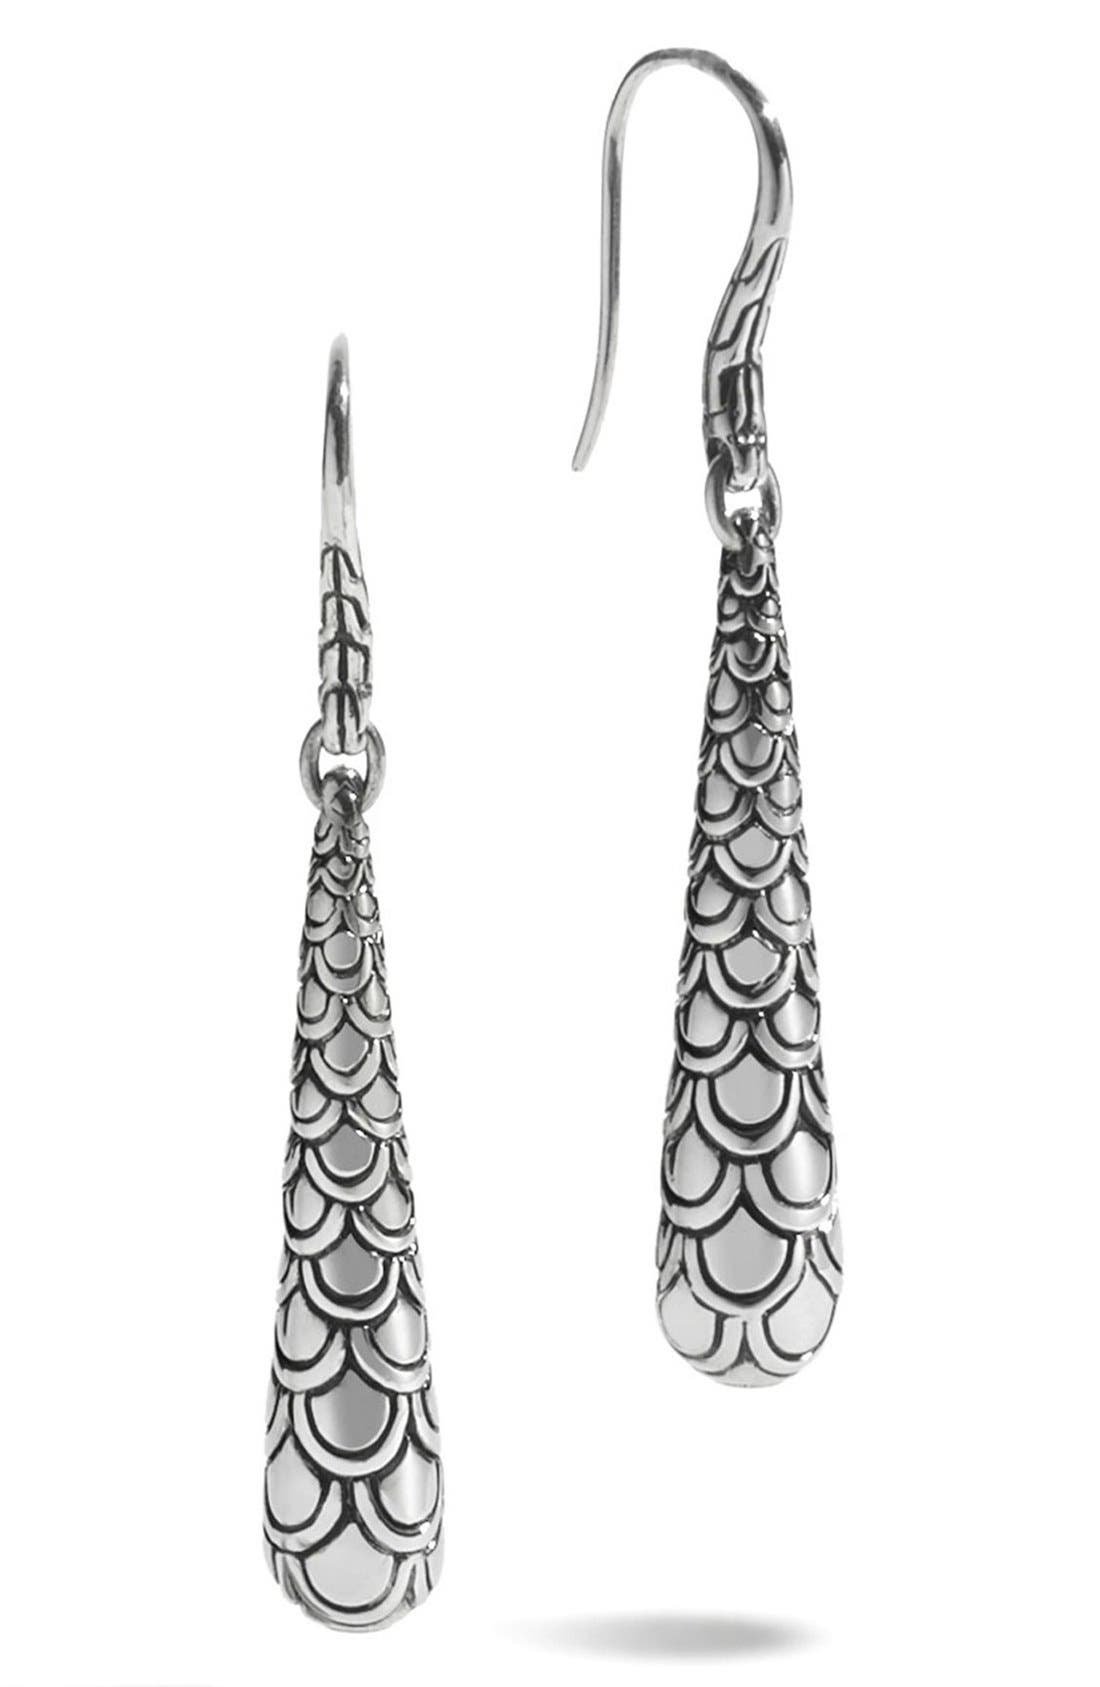 JOHN HARDY Naga Scale Drop Earrings